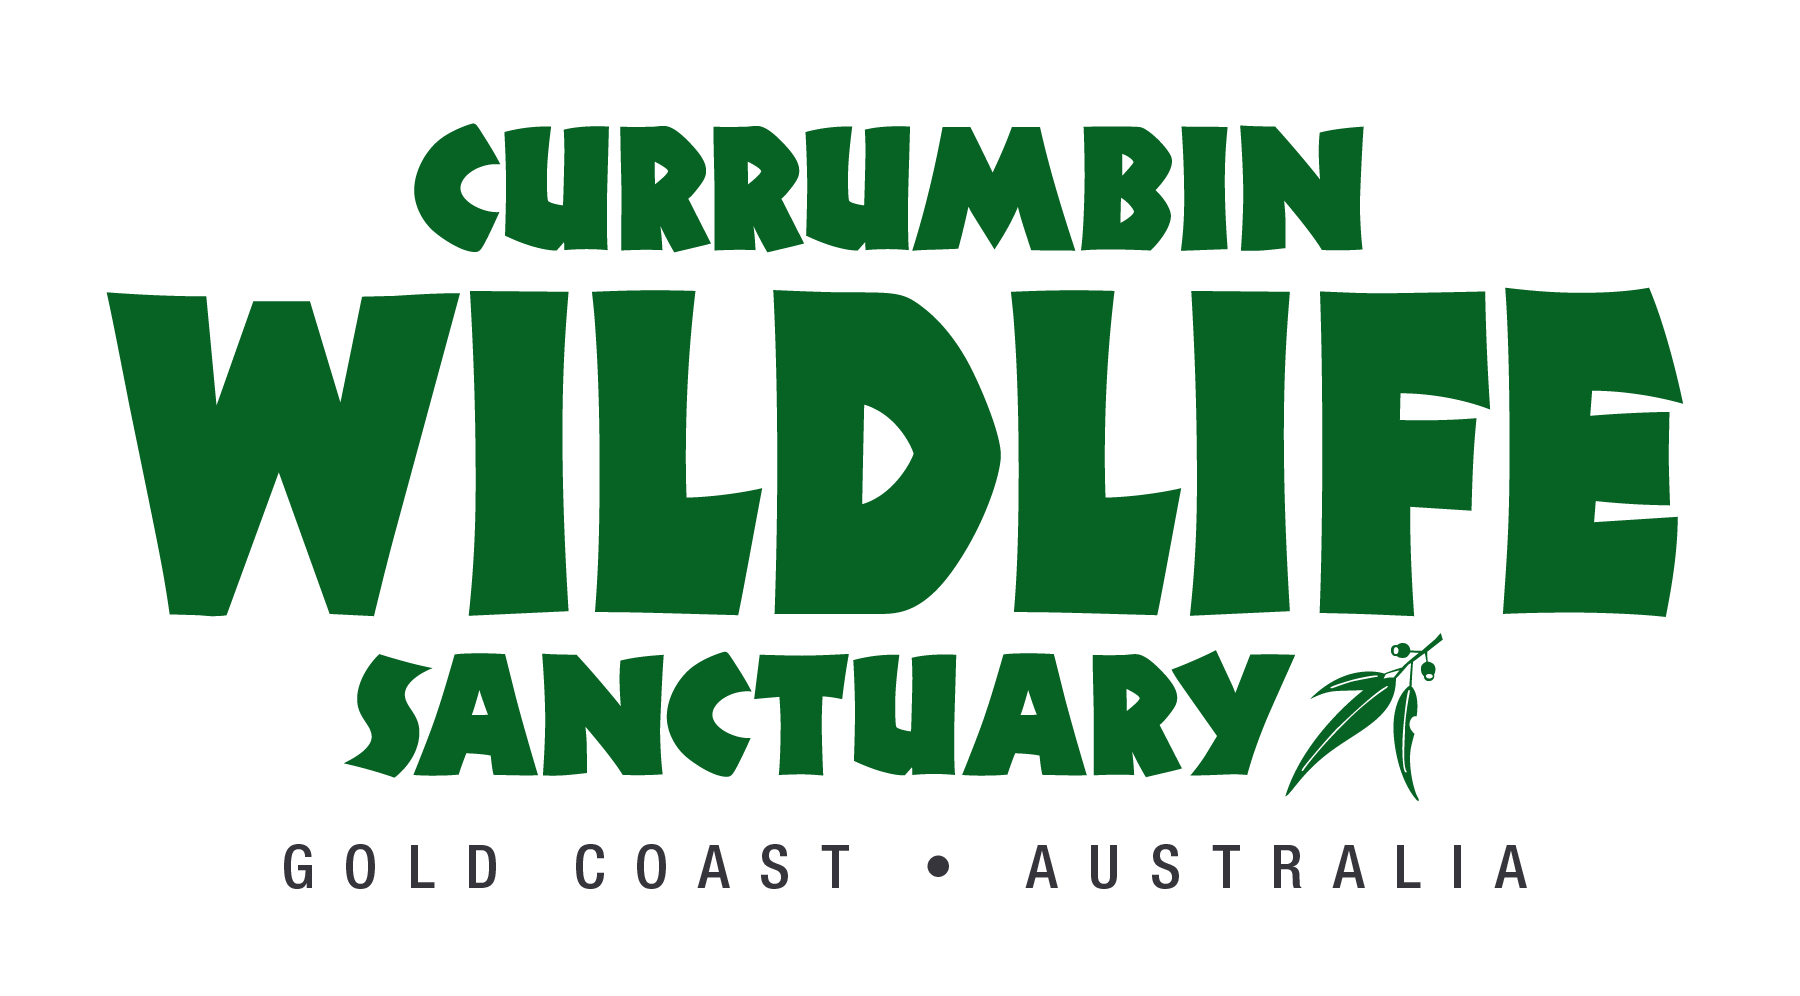 National Trust - Currumbin Wildlife Sanctuary